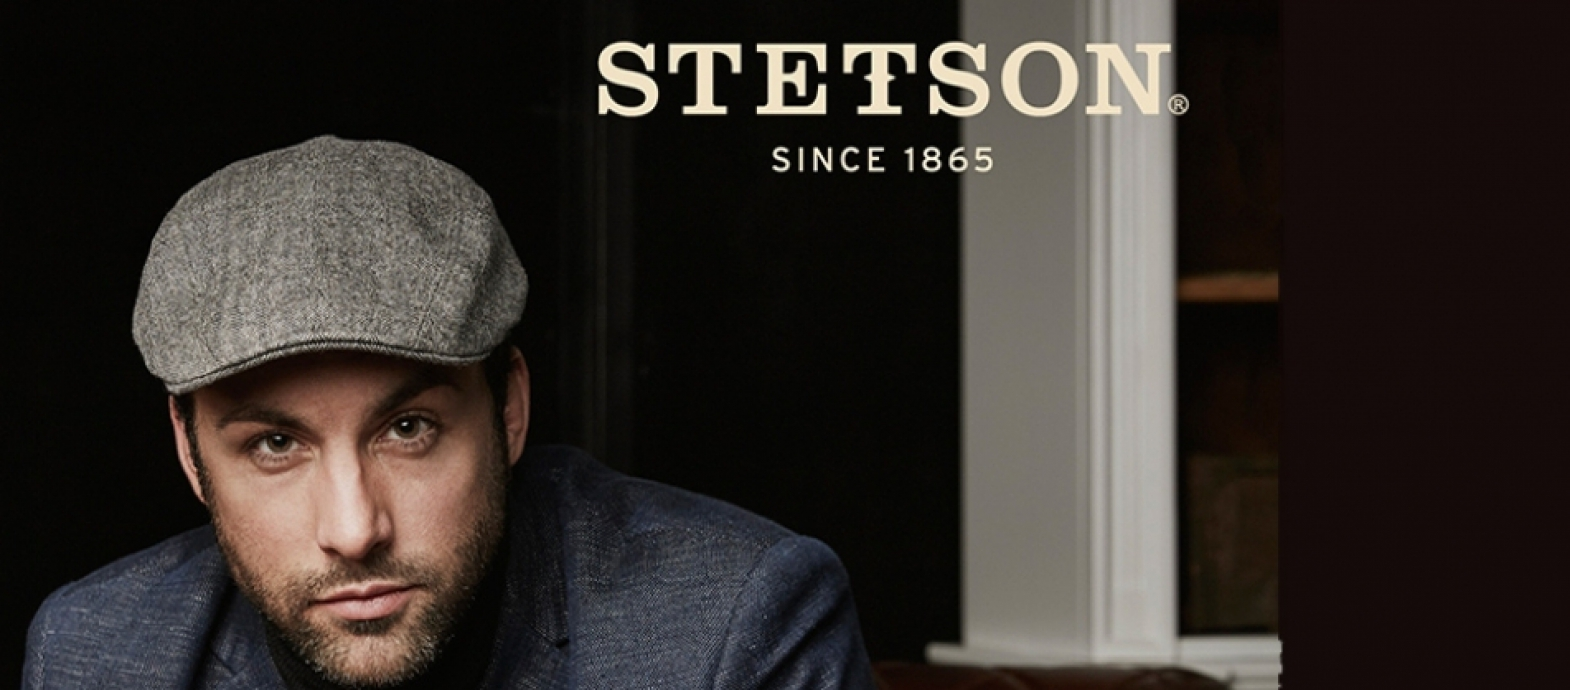 A wide choice of Stetson hats and caps at MV hat-stores